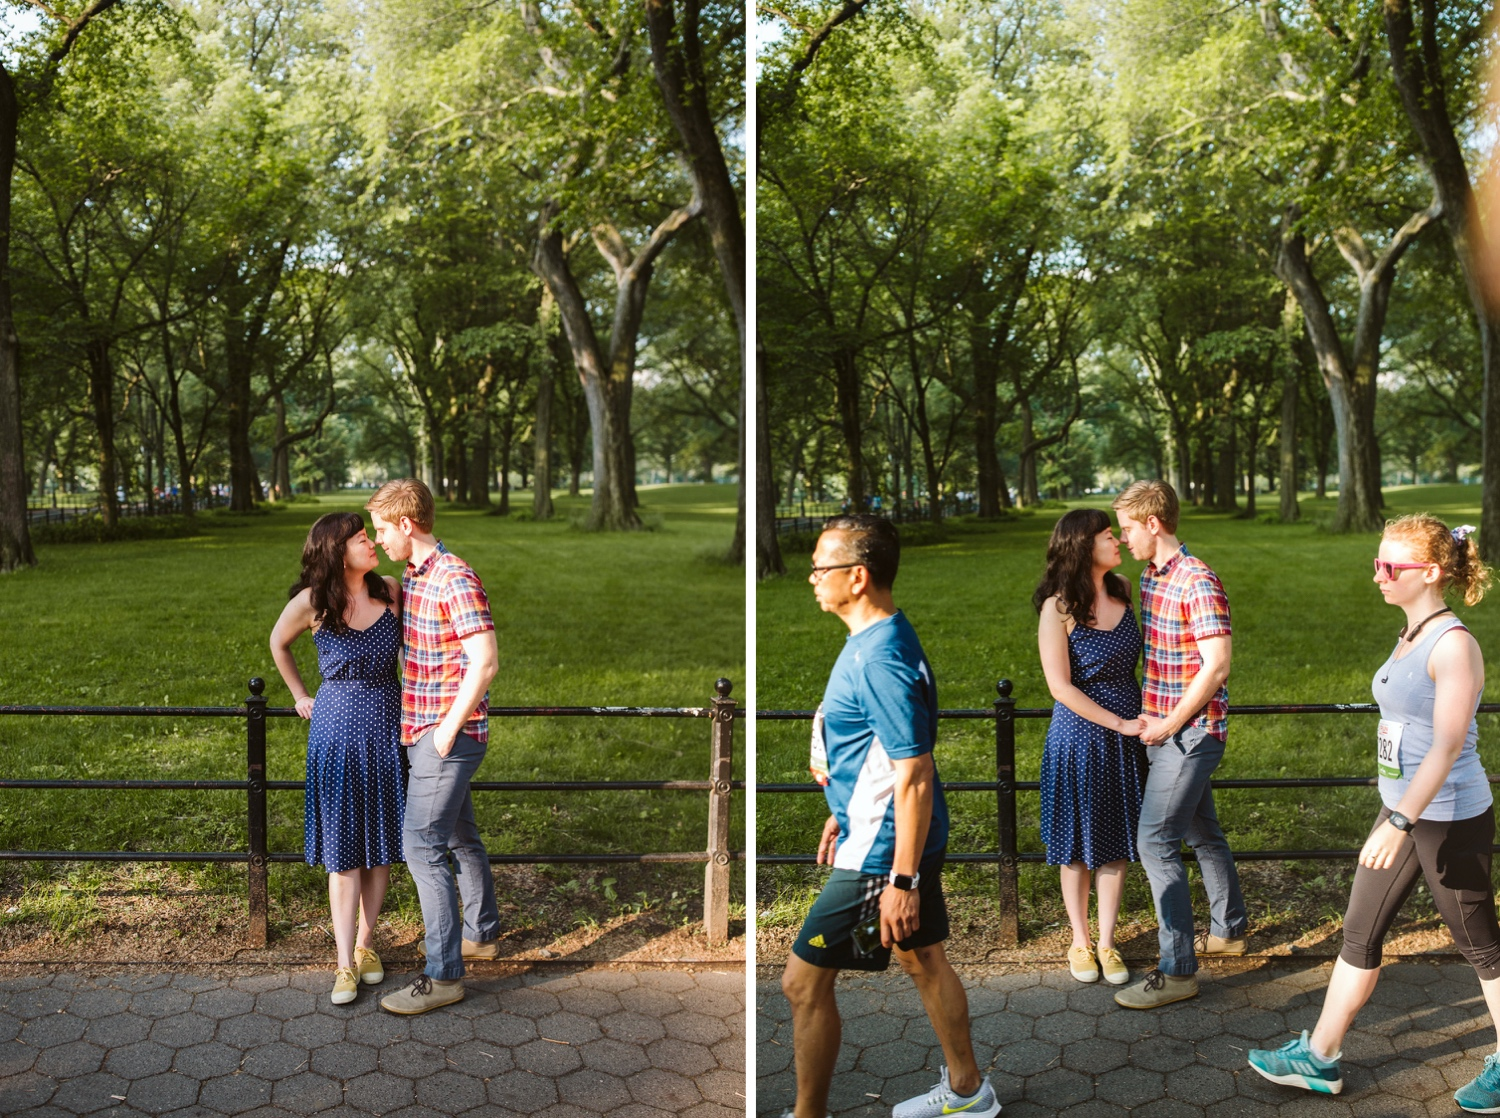 engaged couple kissing in the first photo, walkers in central park passing through the second photo in front of them